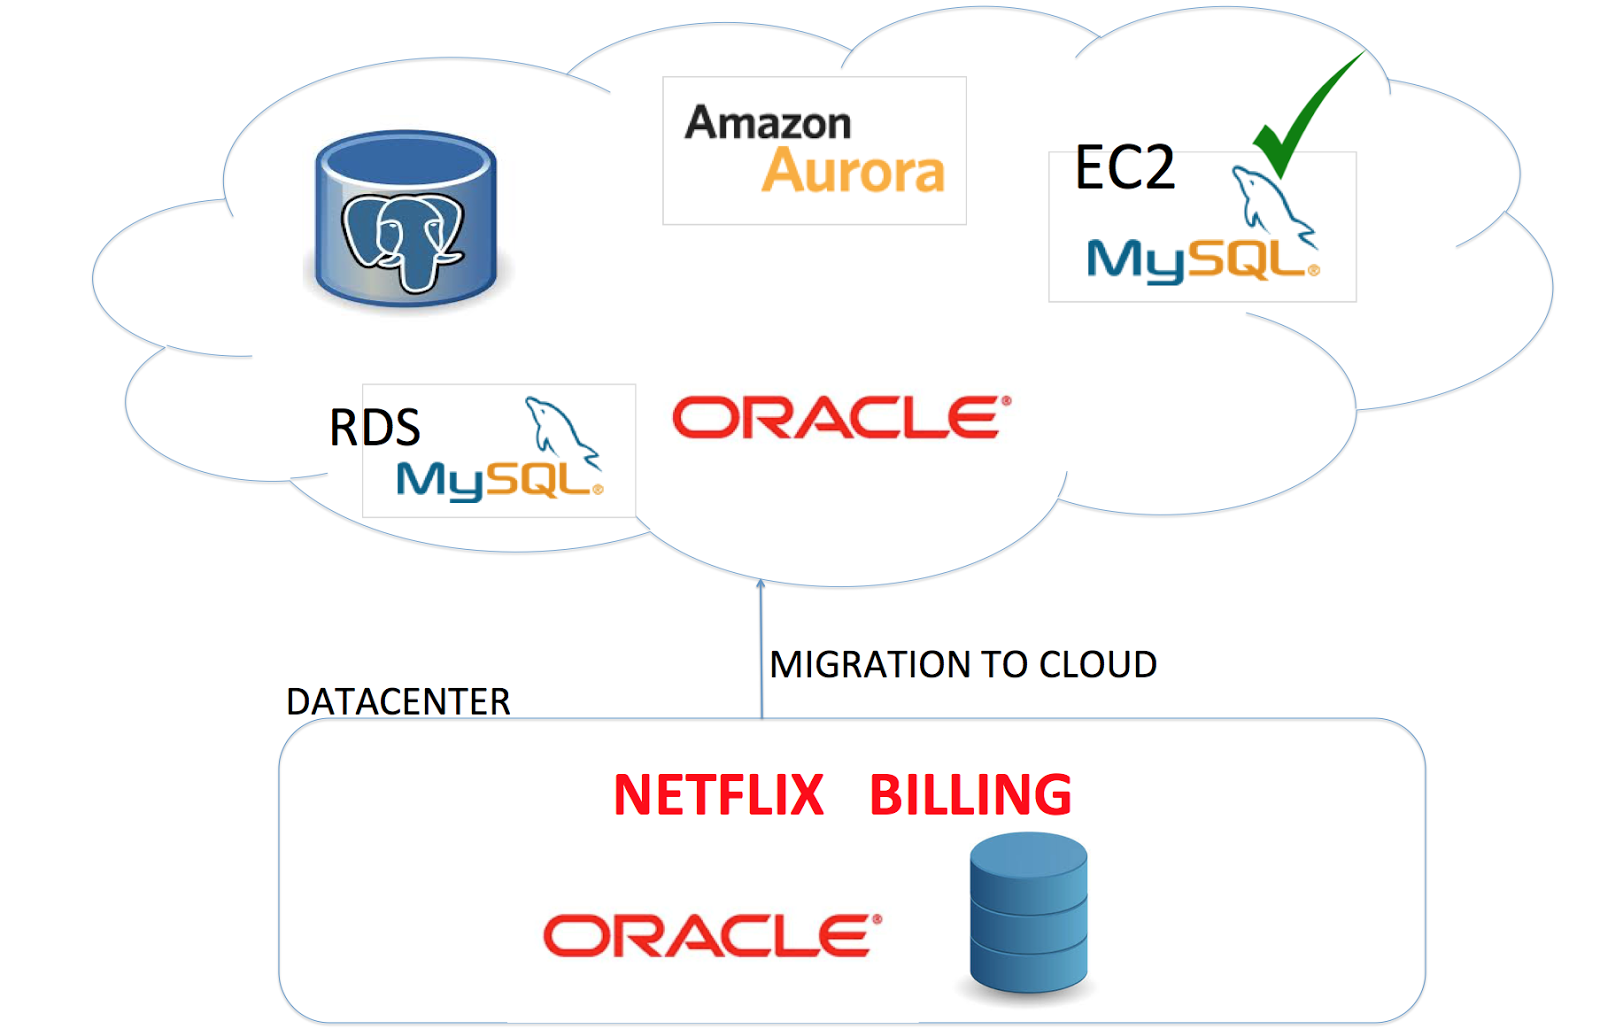 Netflix Billing Migration To Aws Part Iii Techblog Medium Addition Warehouse Business Workflow Diagram On Database Tool Oracle As Source Was In Migrating Cloud Would Avoid Cross Simplifying The Coding Effort And Configuration